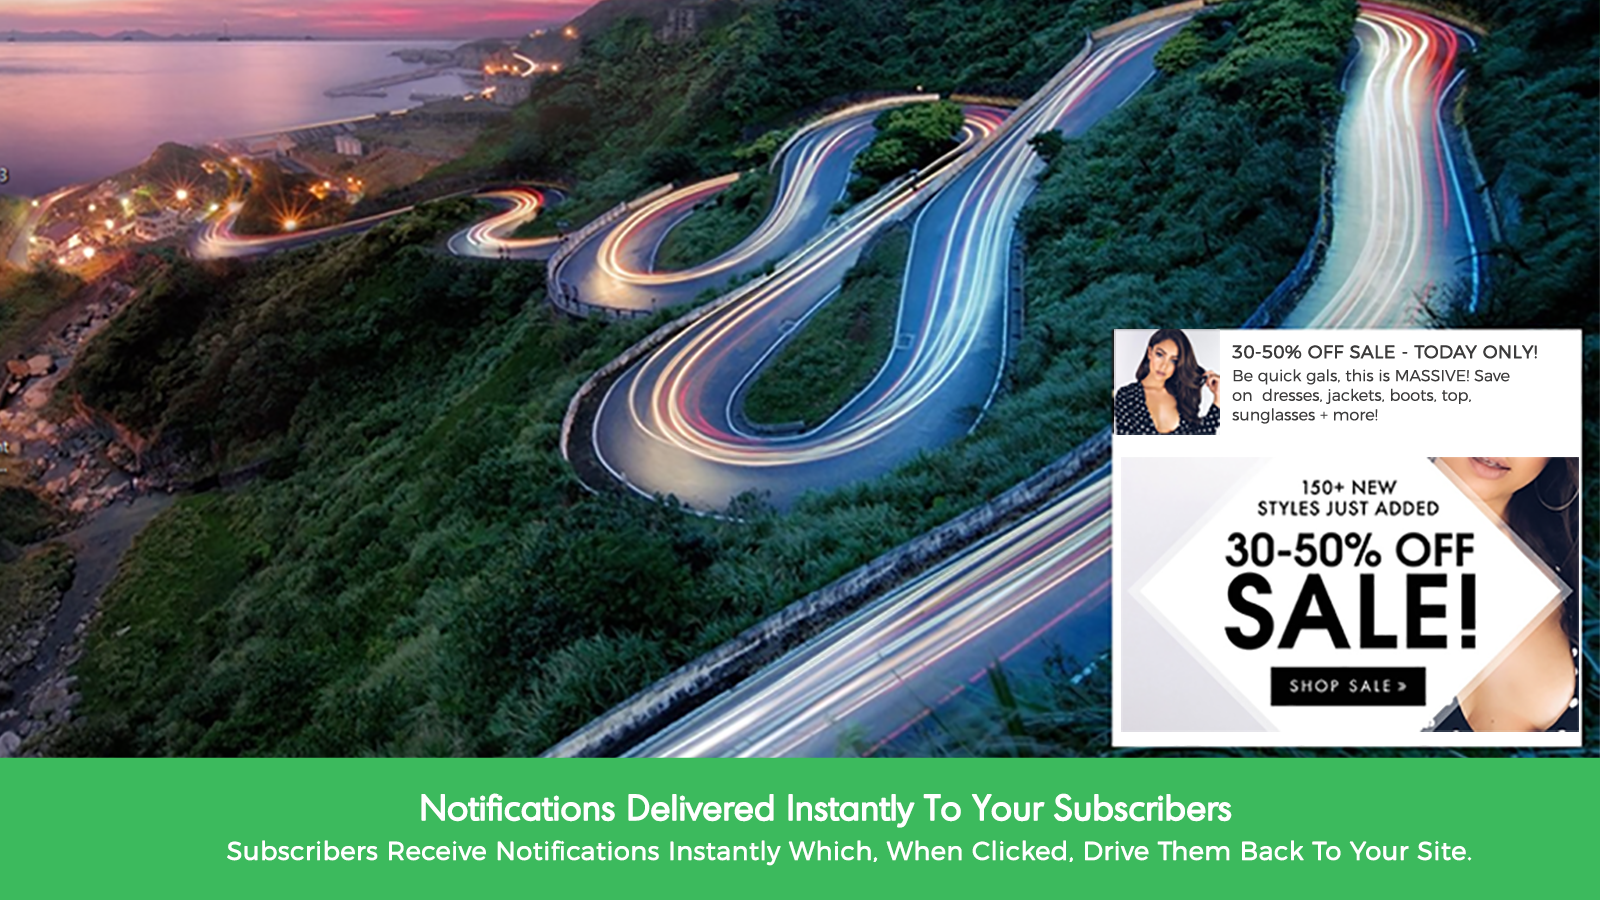 Notifications can be delivered instantly to subscribers or scheduled for a later date